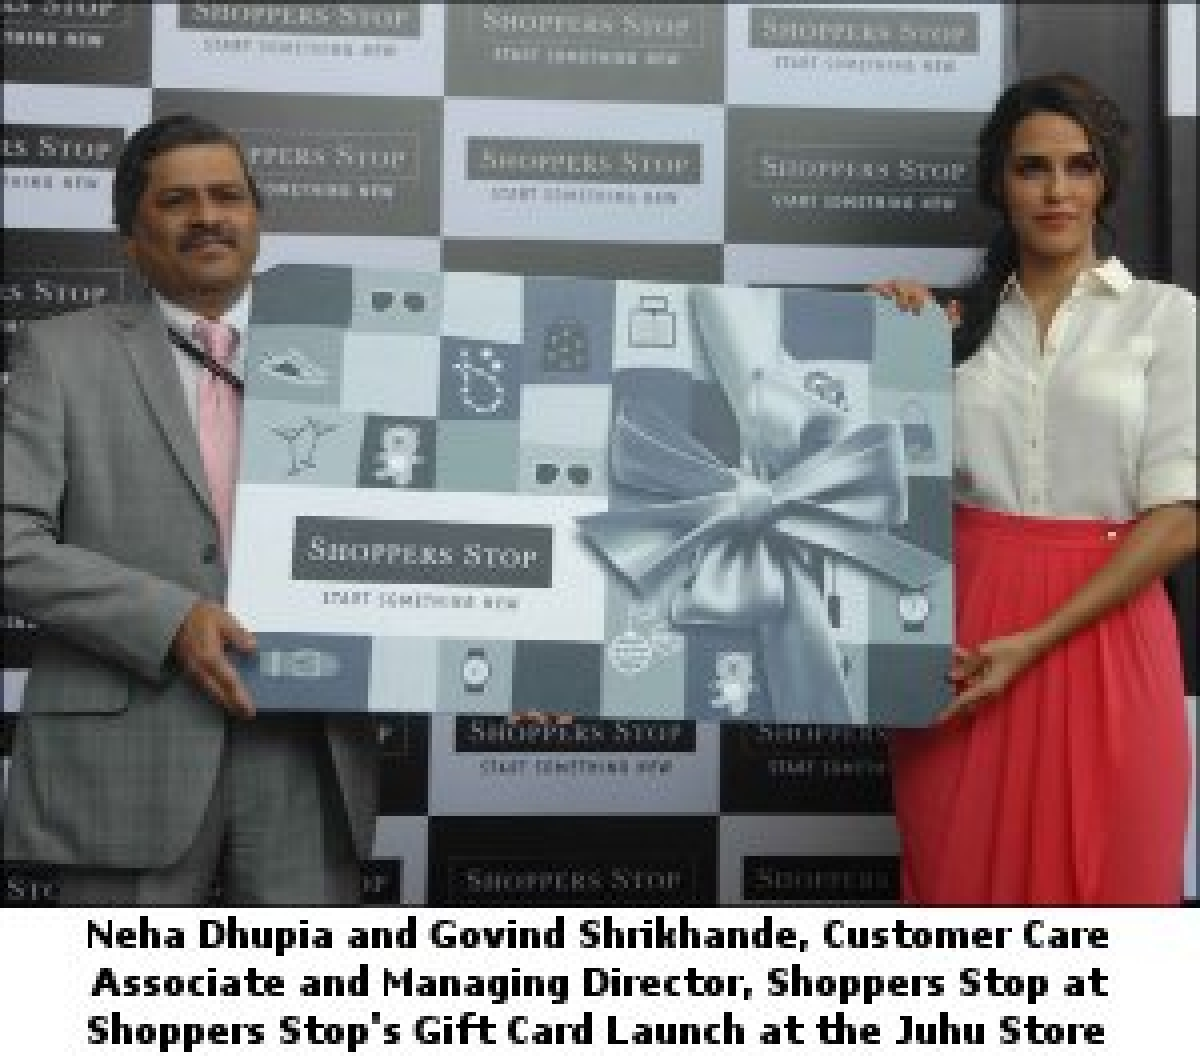 Shoppers Stop transforms the gifting experience with the launch of the Shoppers Stop Gift Cards